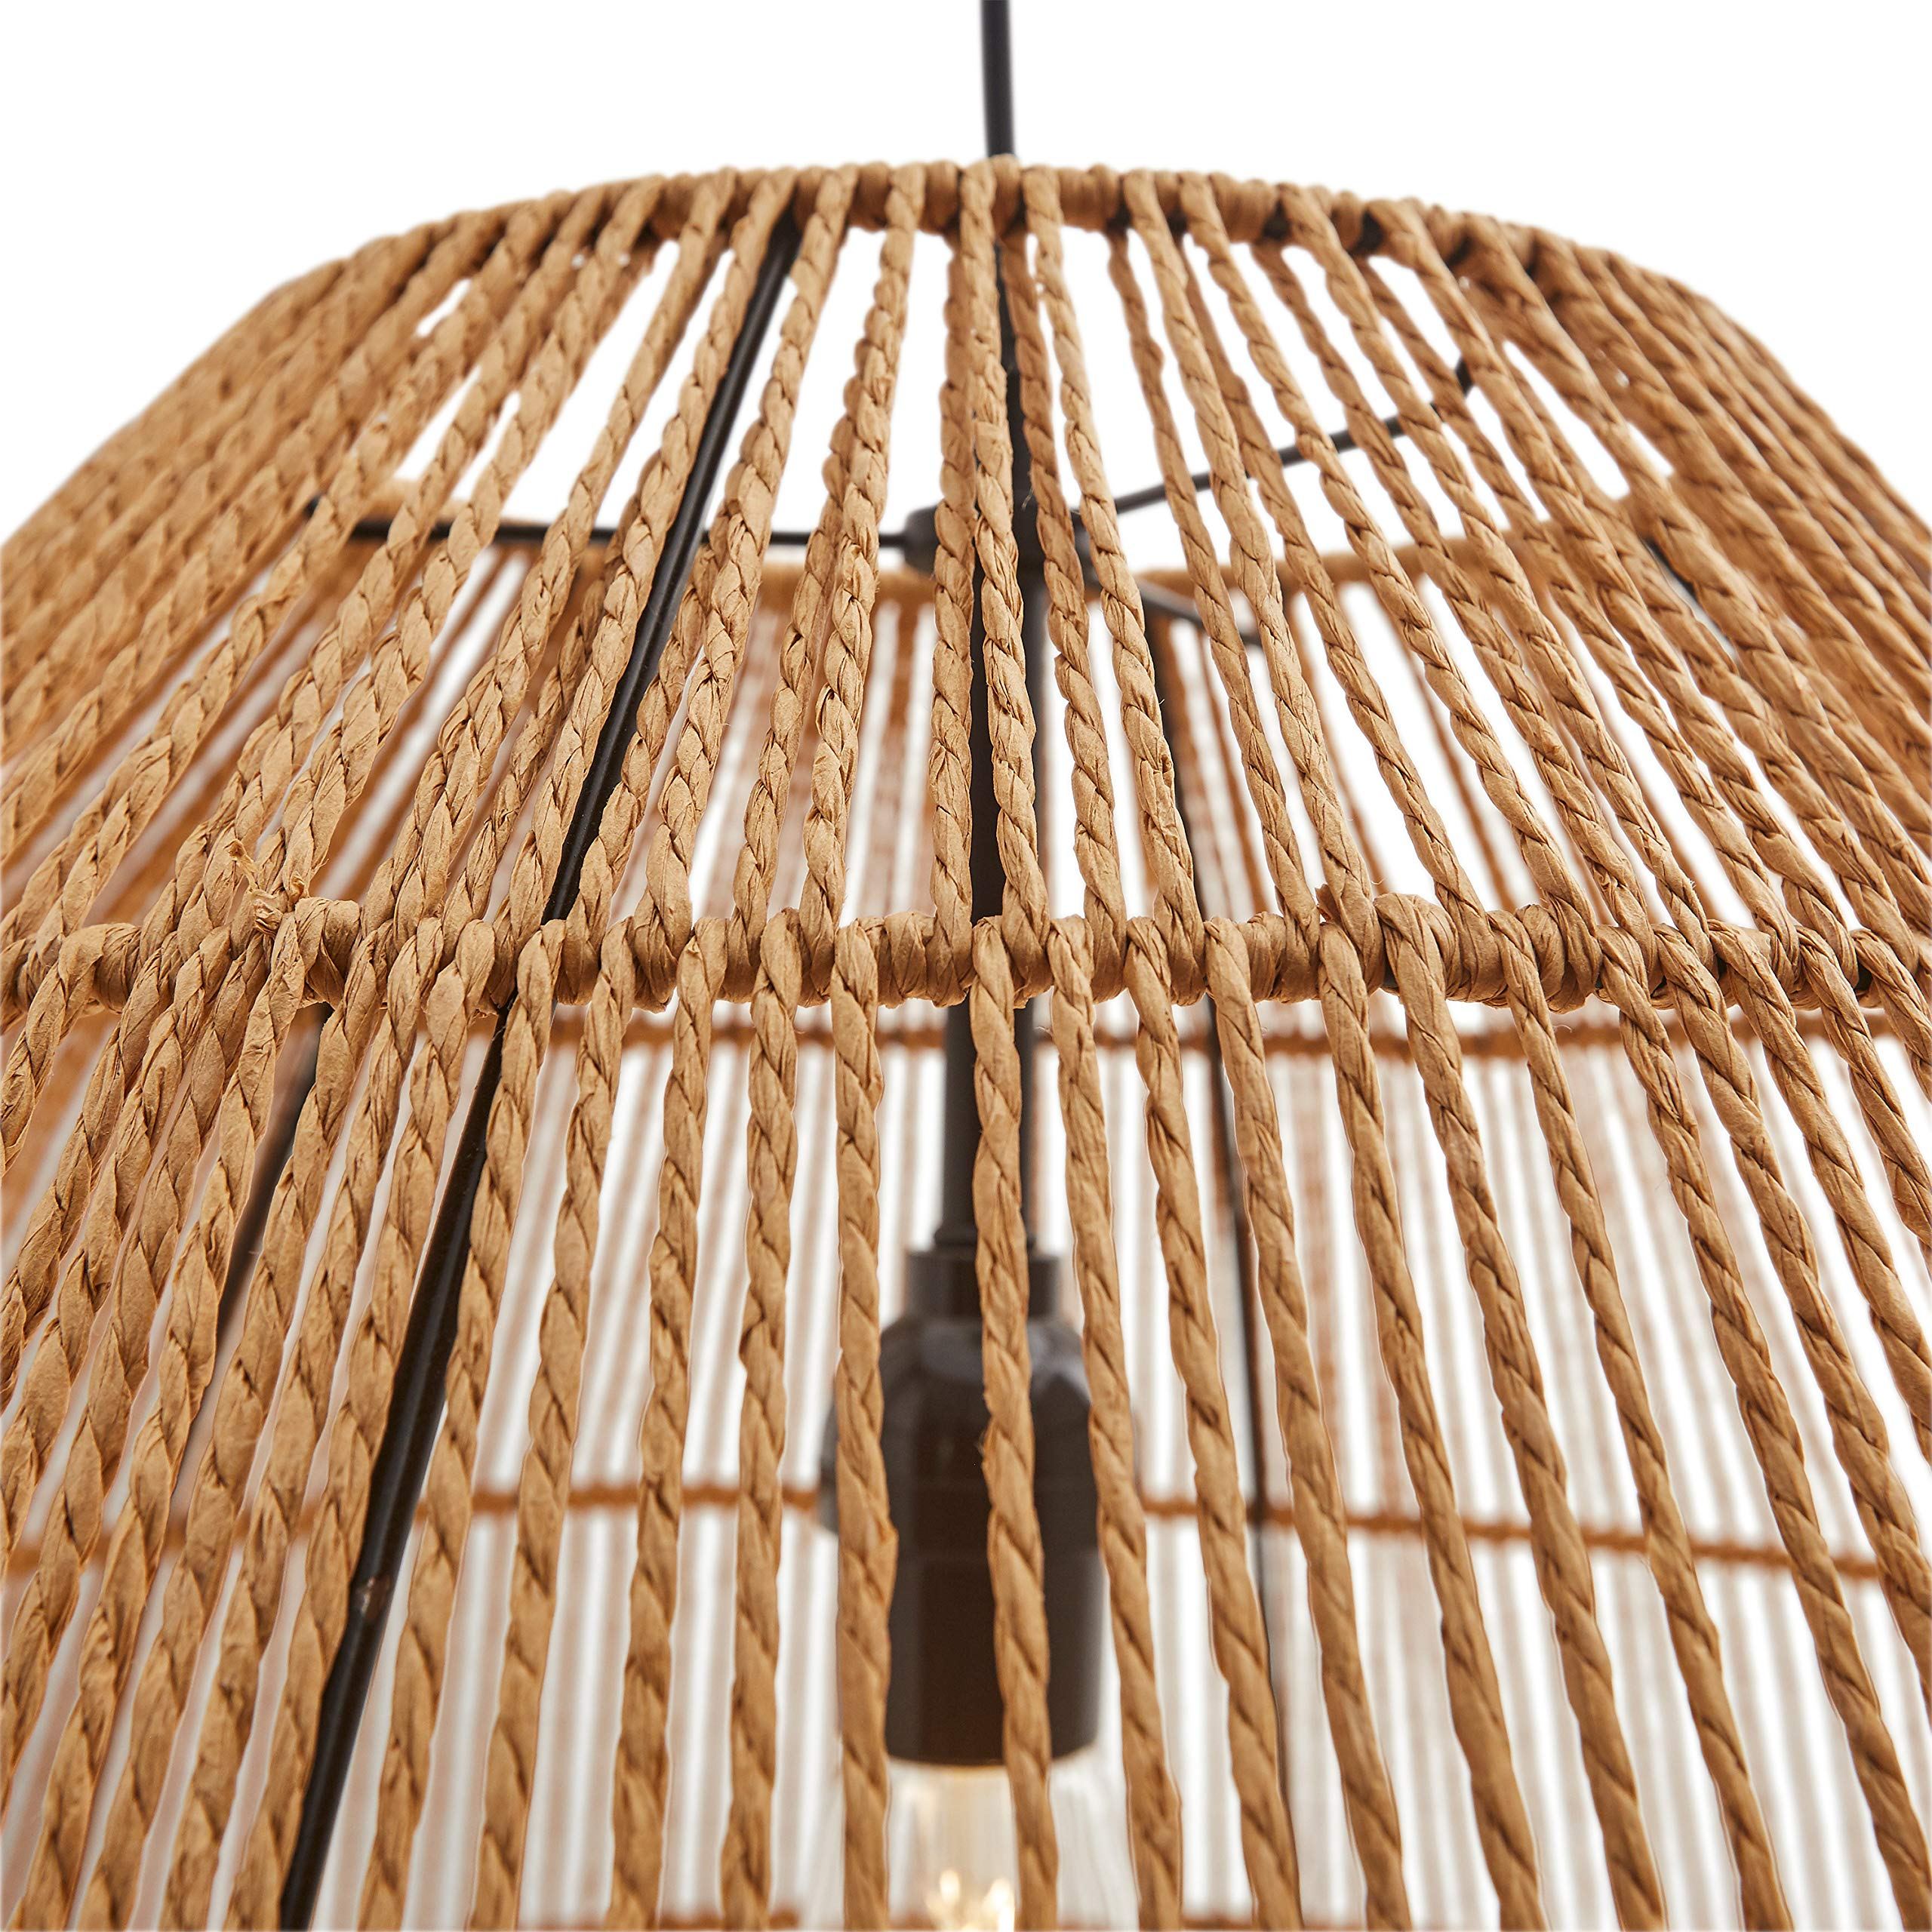 Stone & Beam Rustic Global Round Woven Pendant with Bulb, 44.5''H, Natural Rattan by Stone & Beam (Image #2)